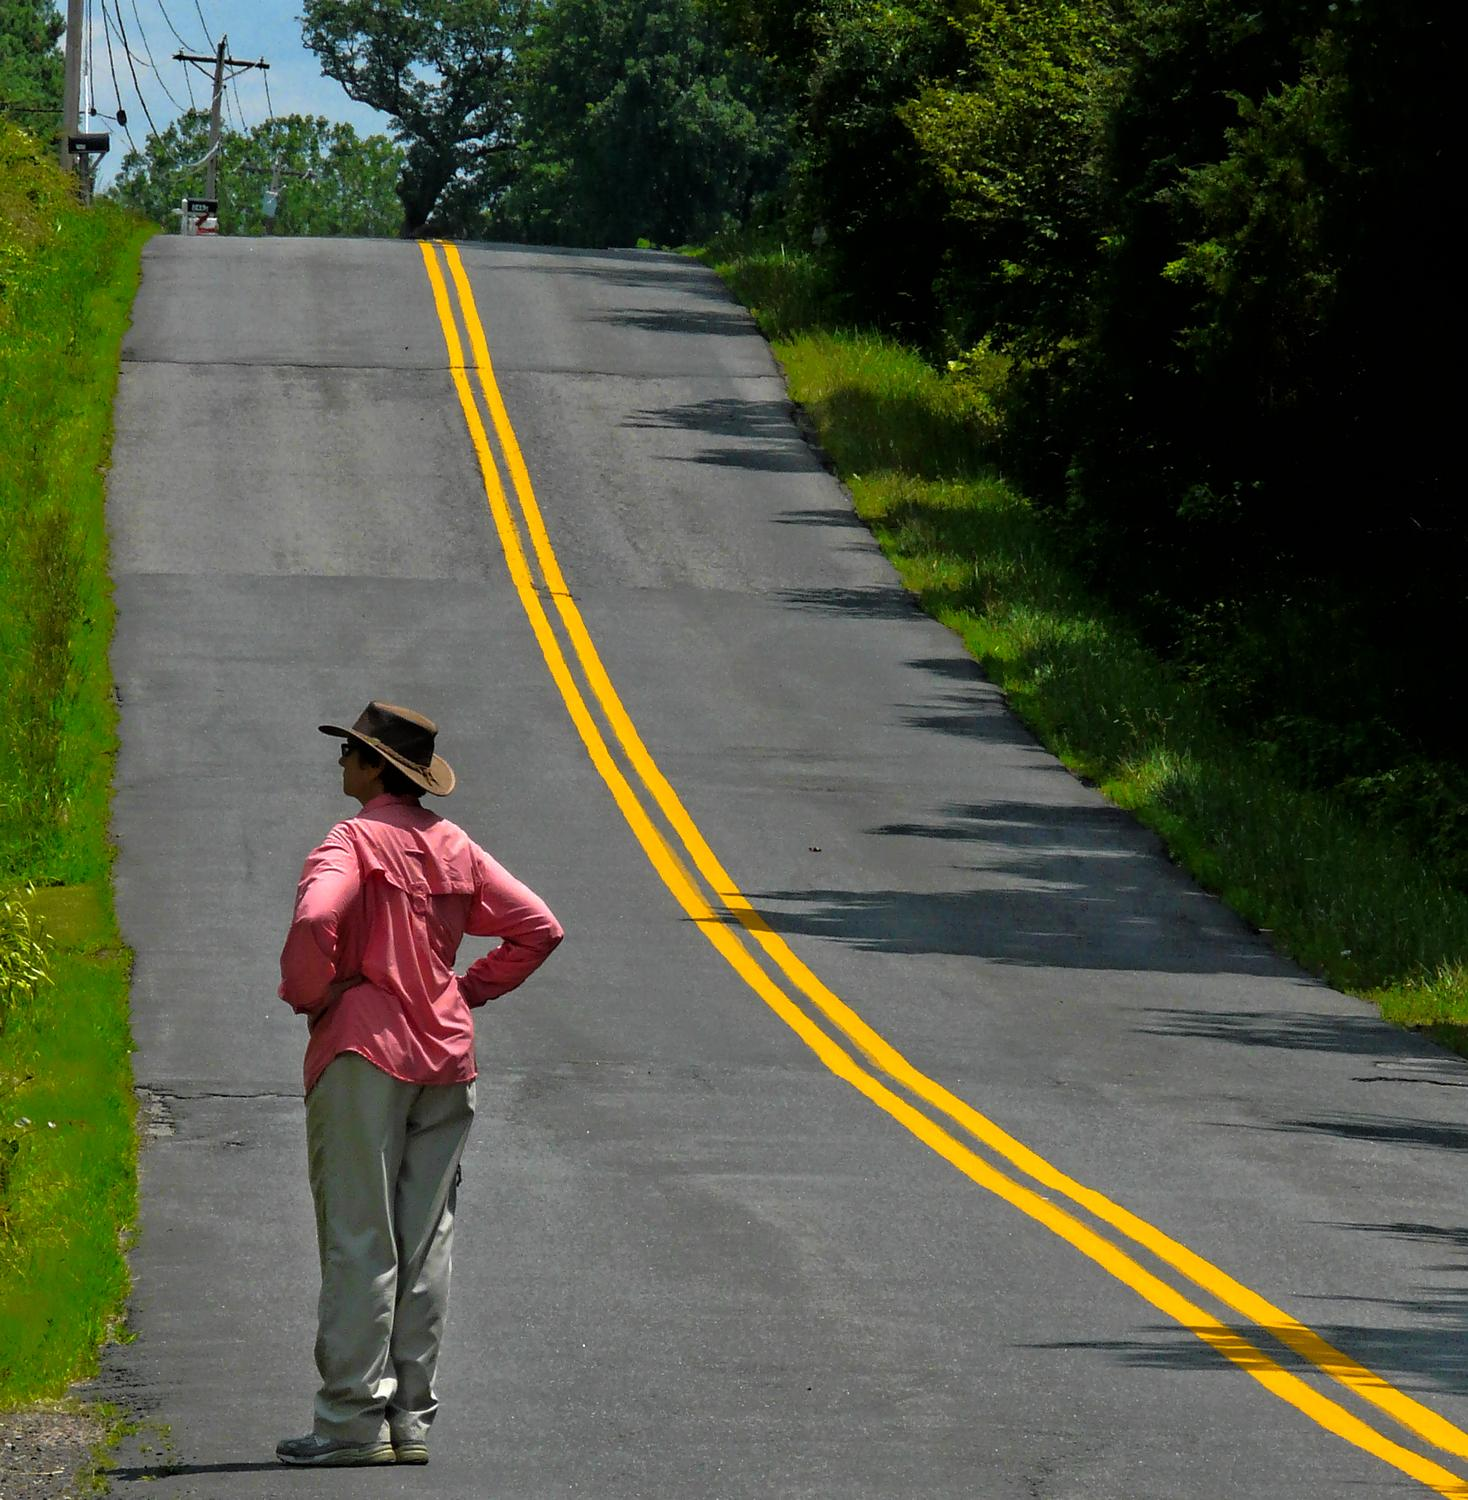 the artist's muse by a hilly road with a yellow stripe - The artist's muse contemplates the next hill on the way home. - Panasonic DMC-FZ18 - - art  - photography - by Tony Karp